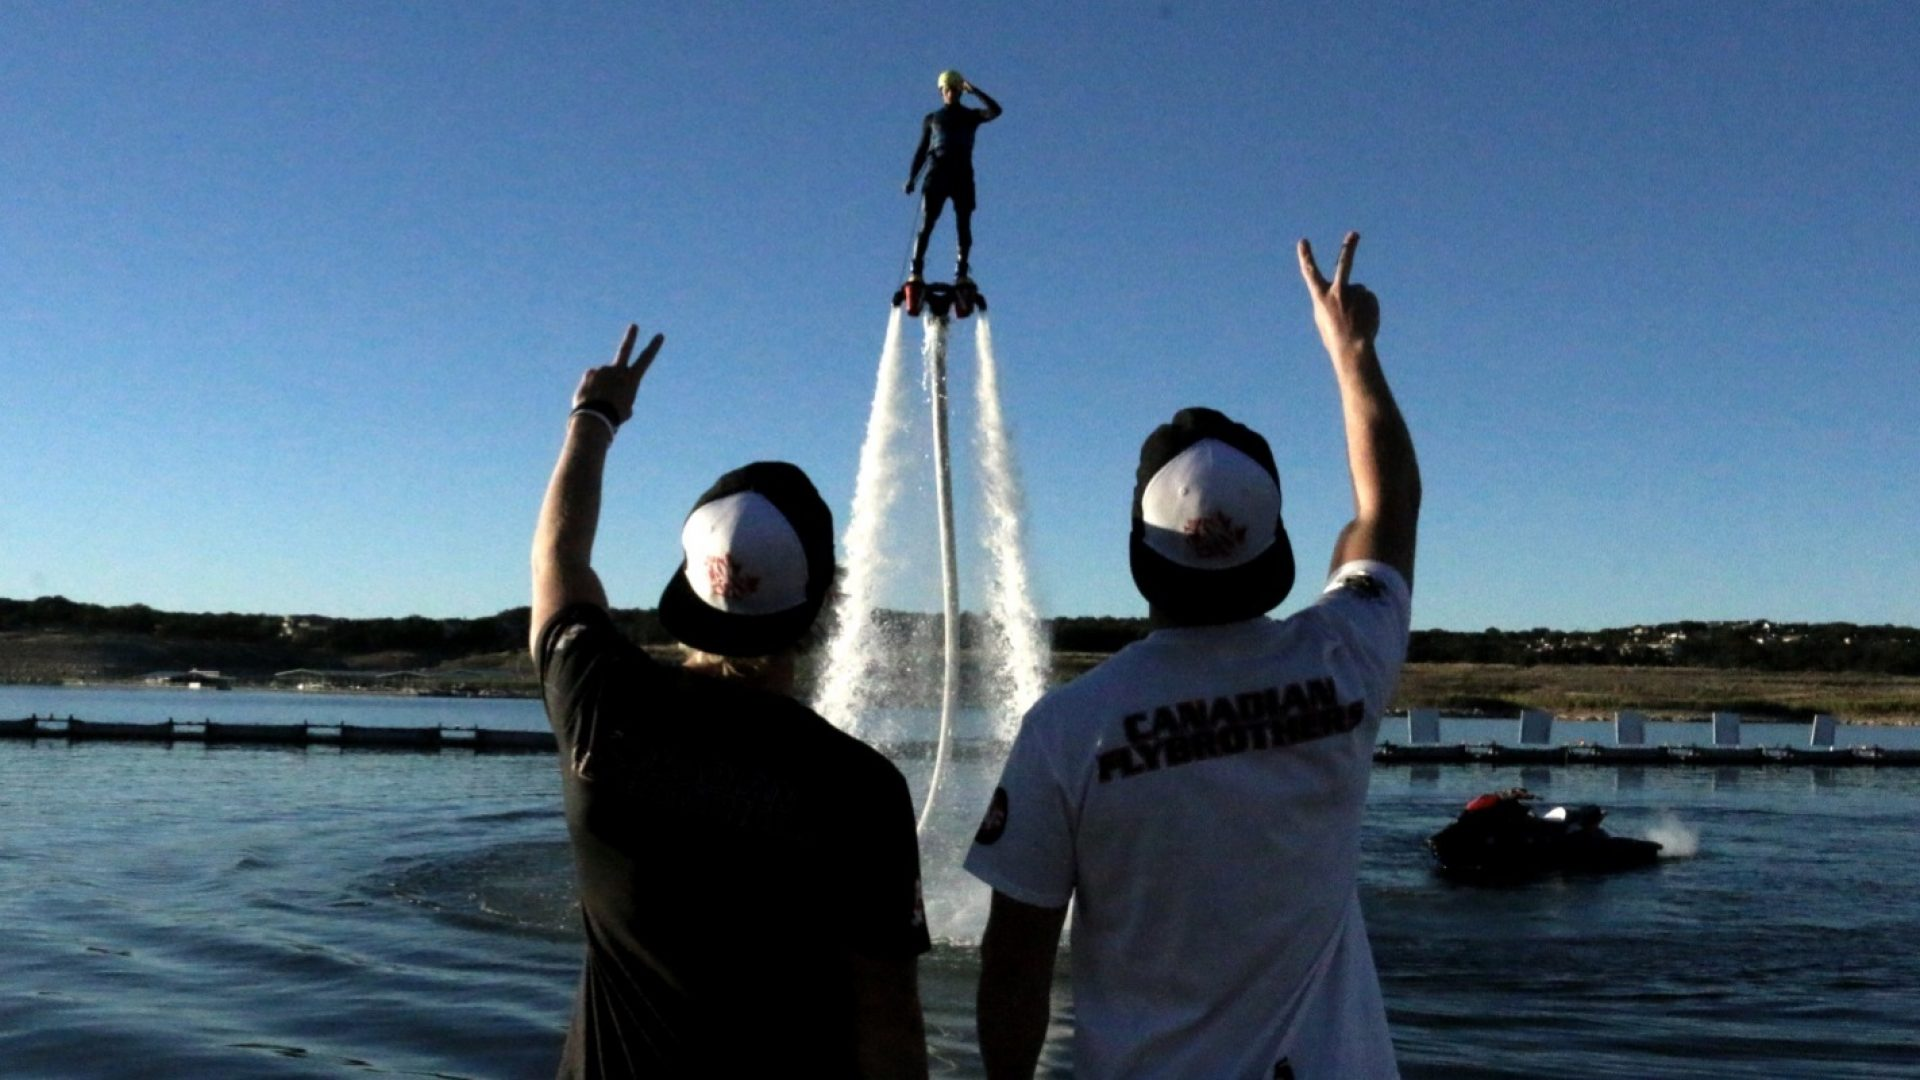 Team CanFly – Canada's Flyboarders